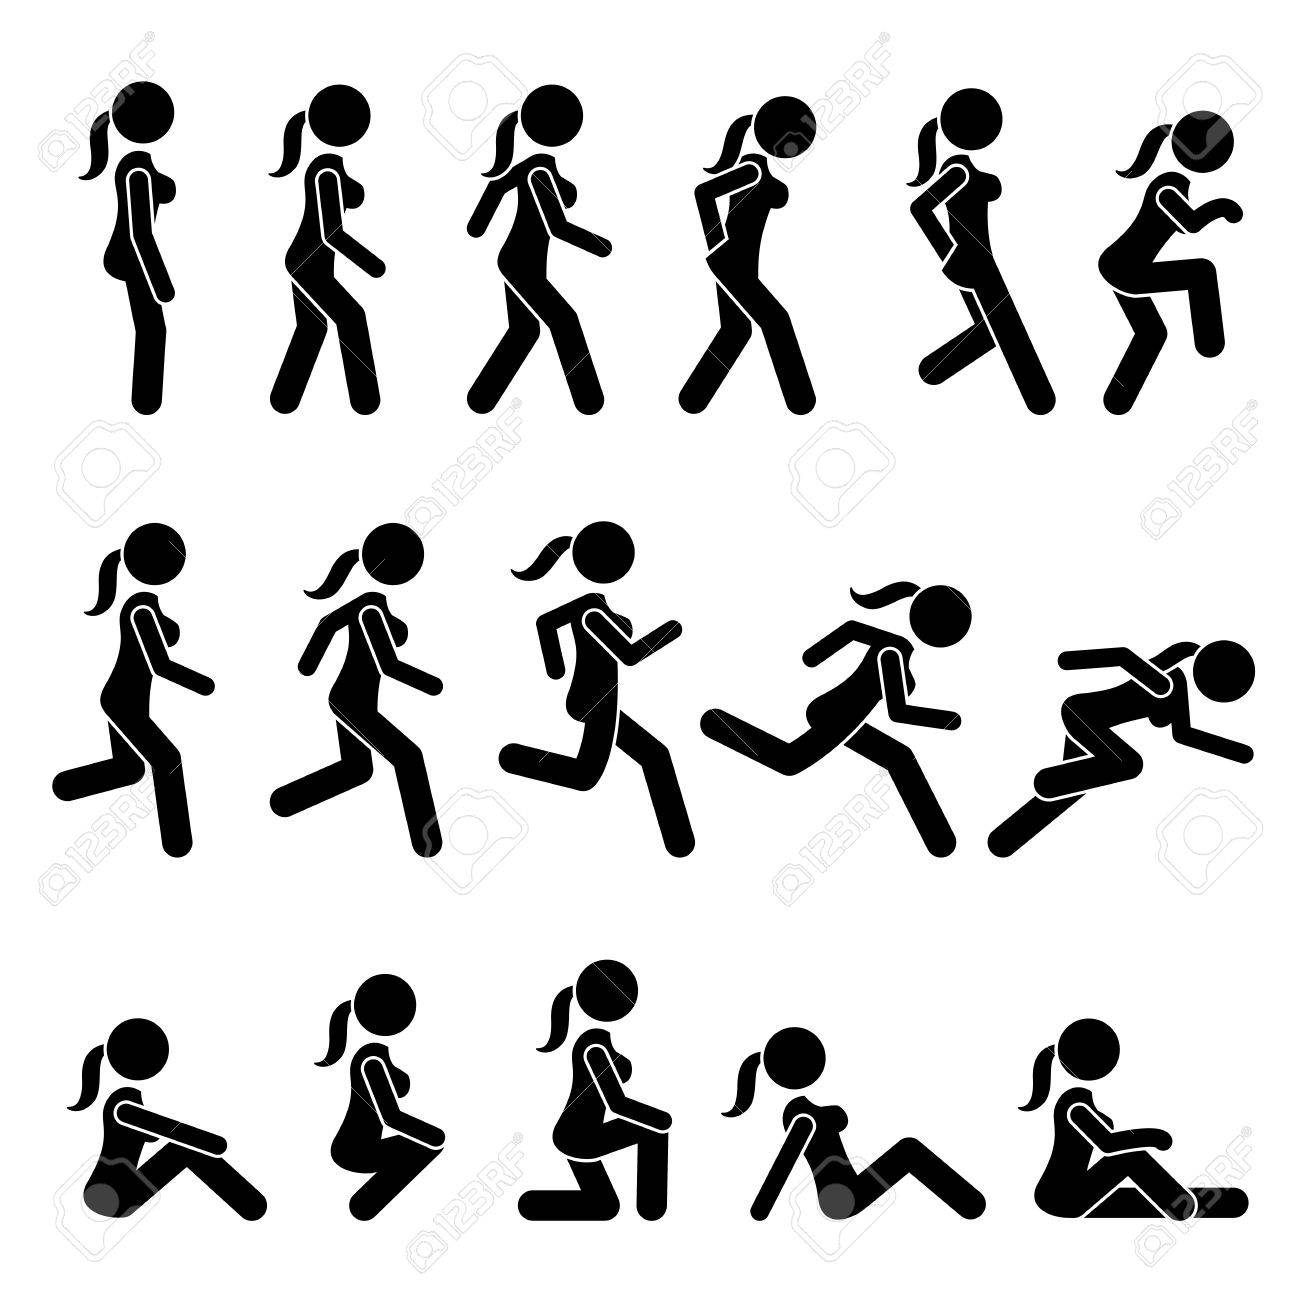 Basic Woman Walk and Run Actions and Movements. Artworks depict a female human walking and running in various motions, positions, and postures. - 76130709